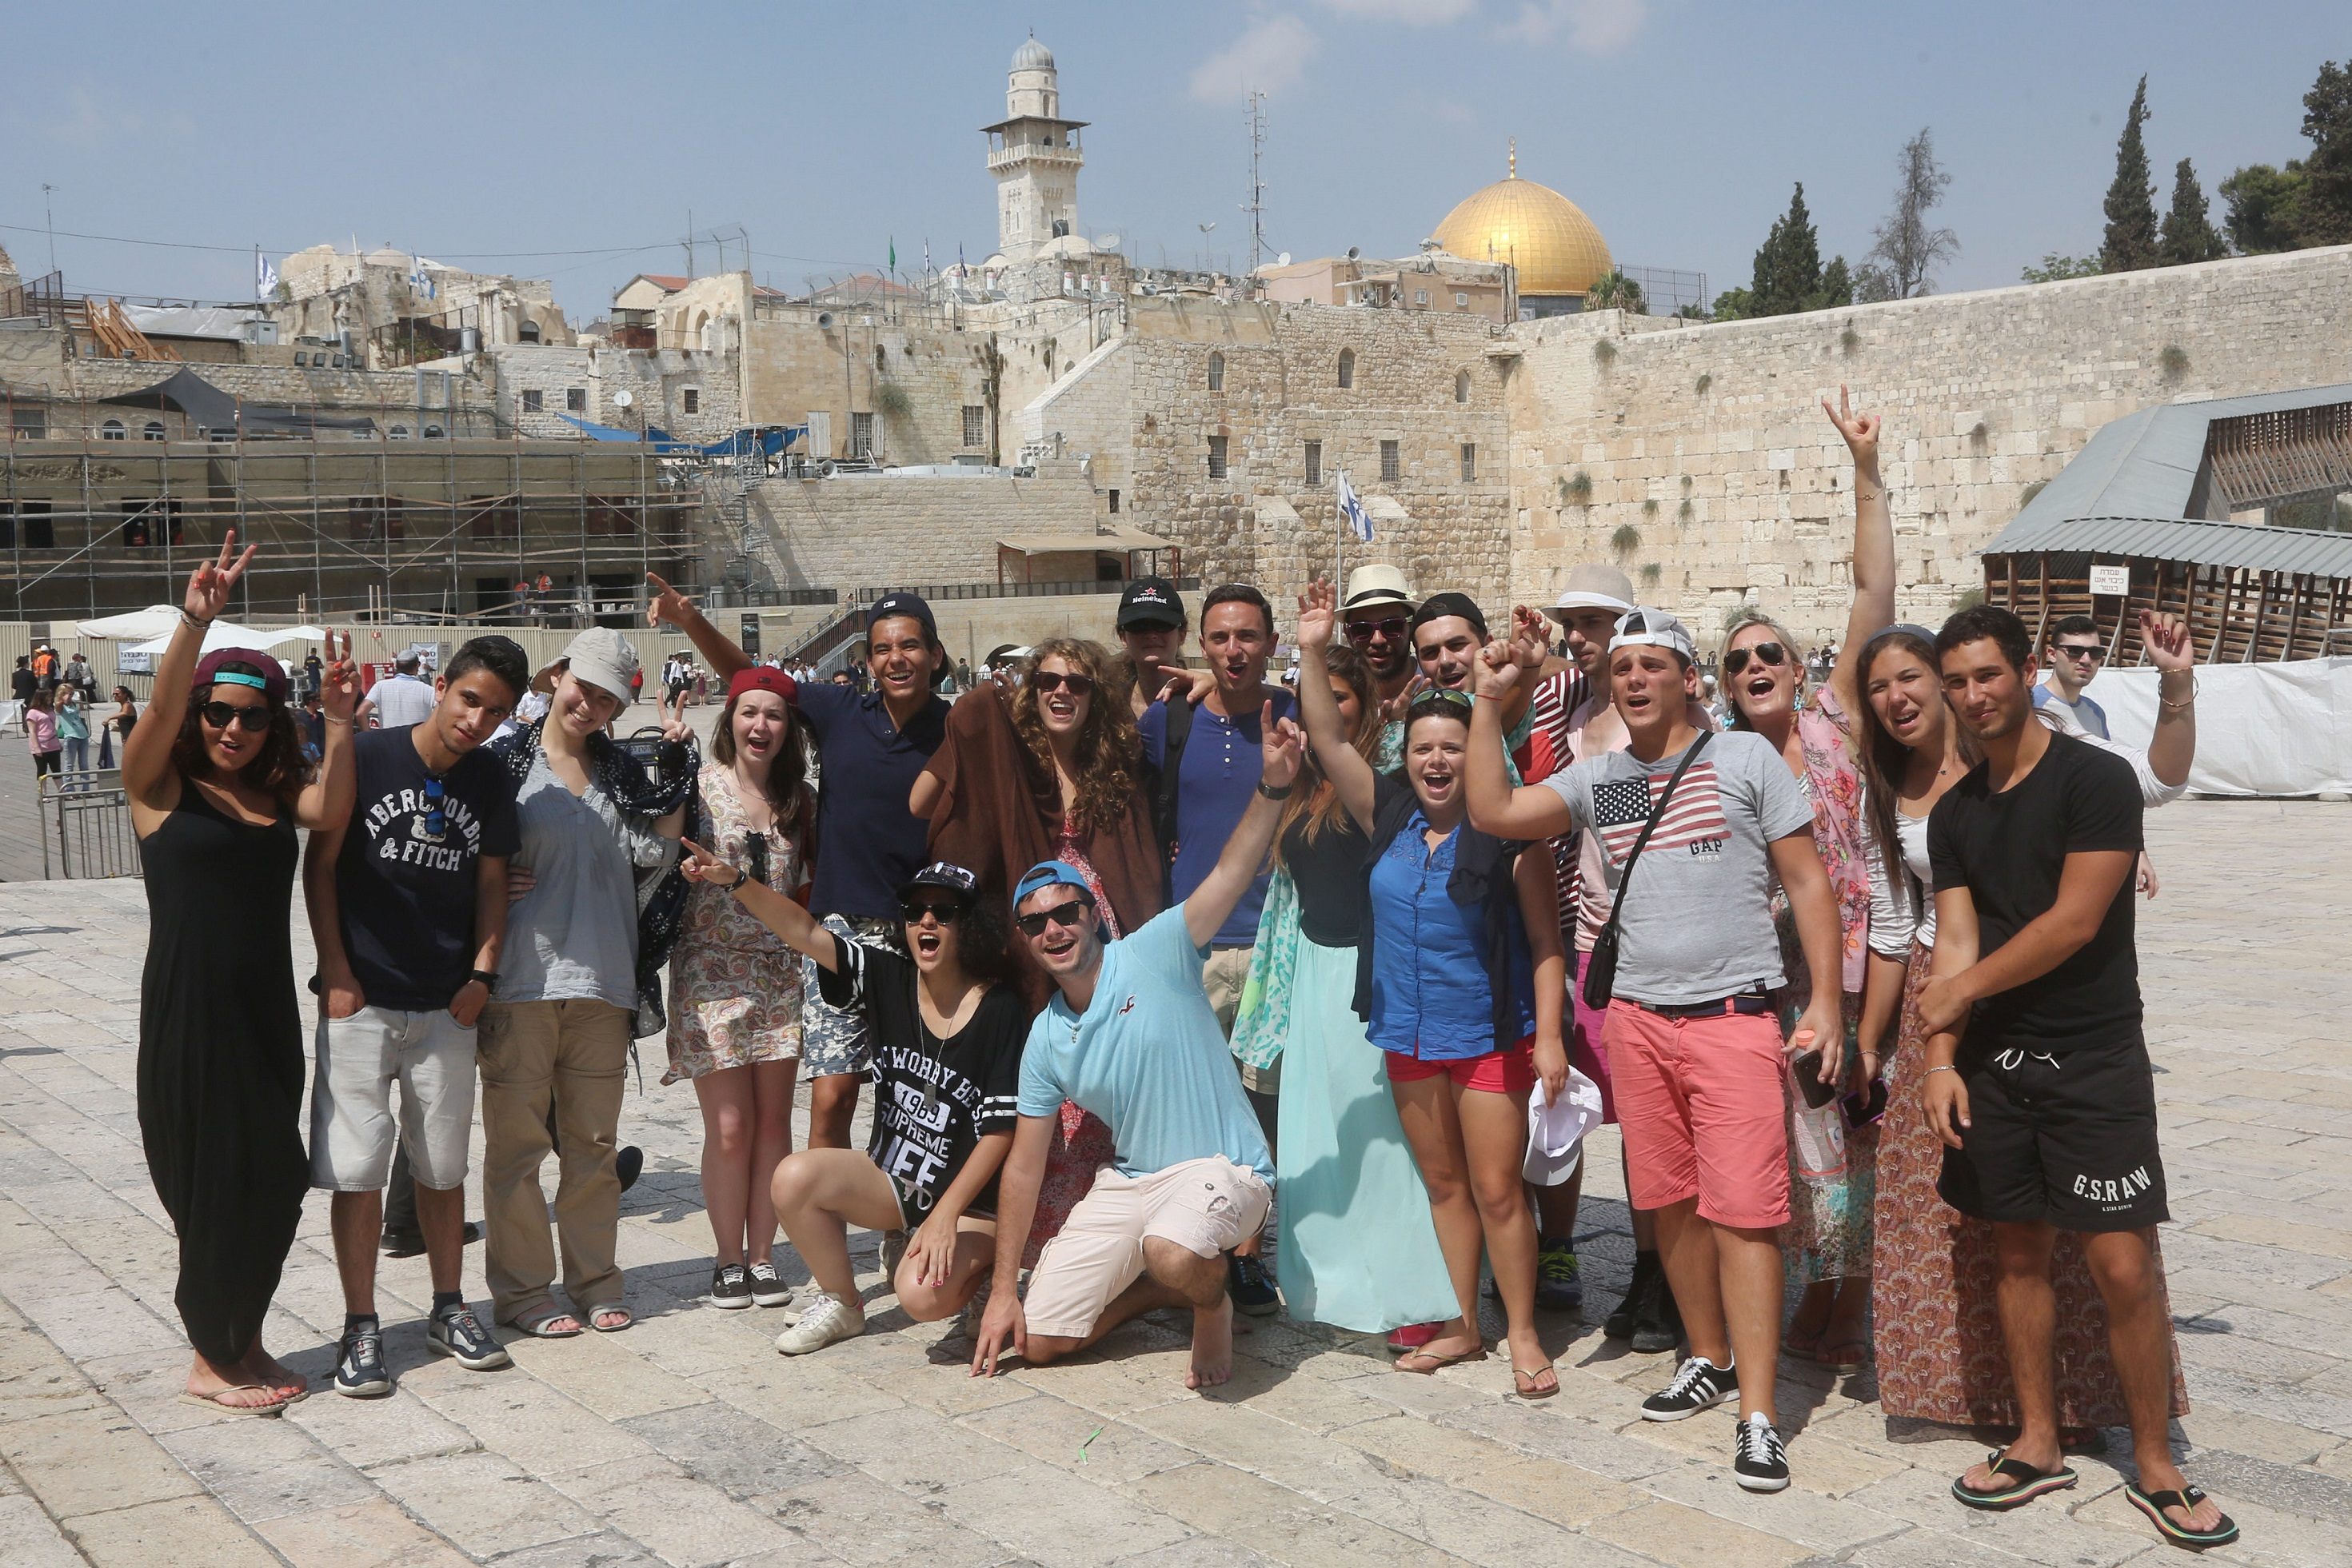 Taglit-Birthright Israel participants visit at the Western Wall in the Old City of Jerusalem on August 18, 2014. (Flash90)